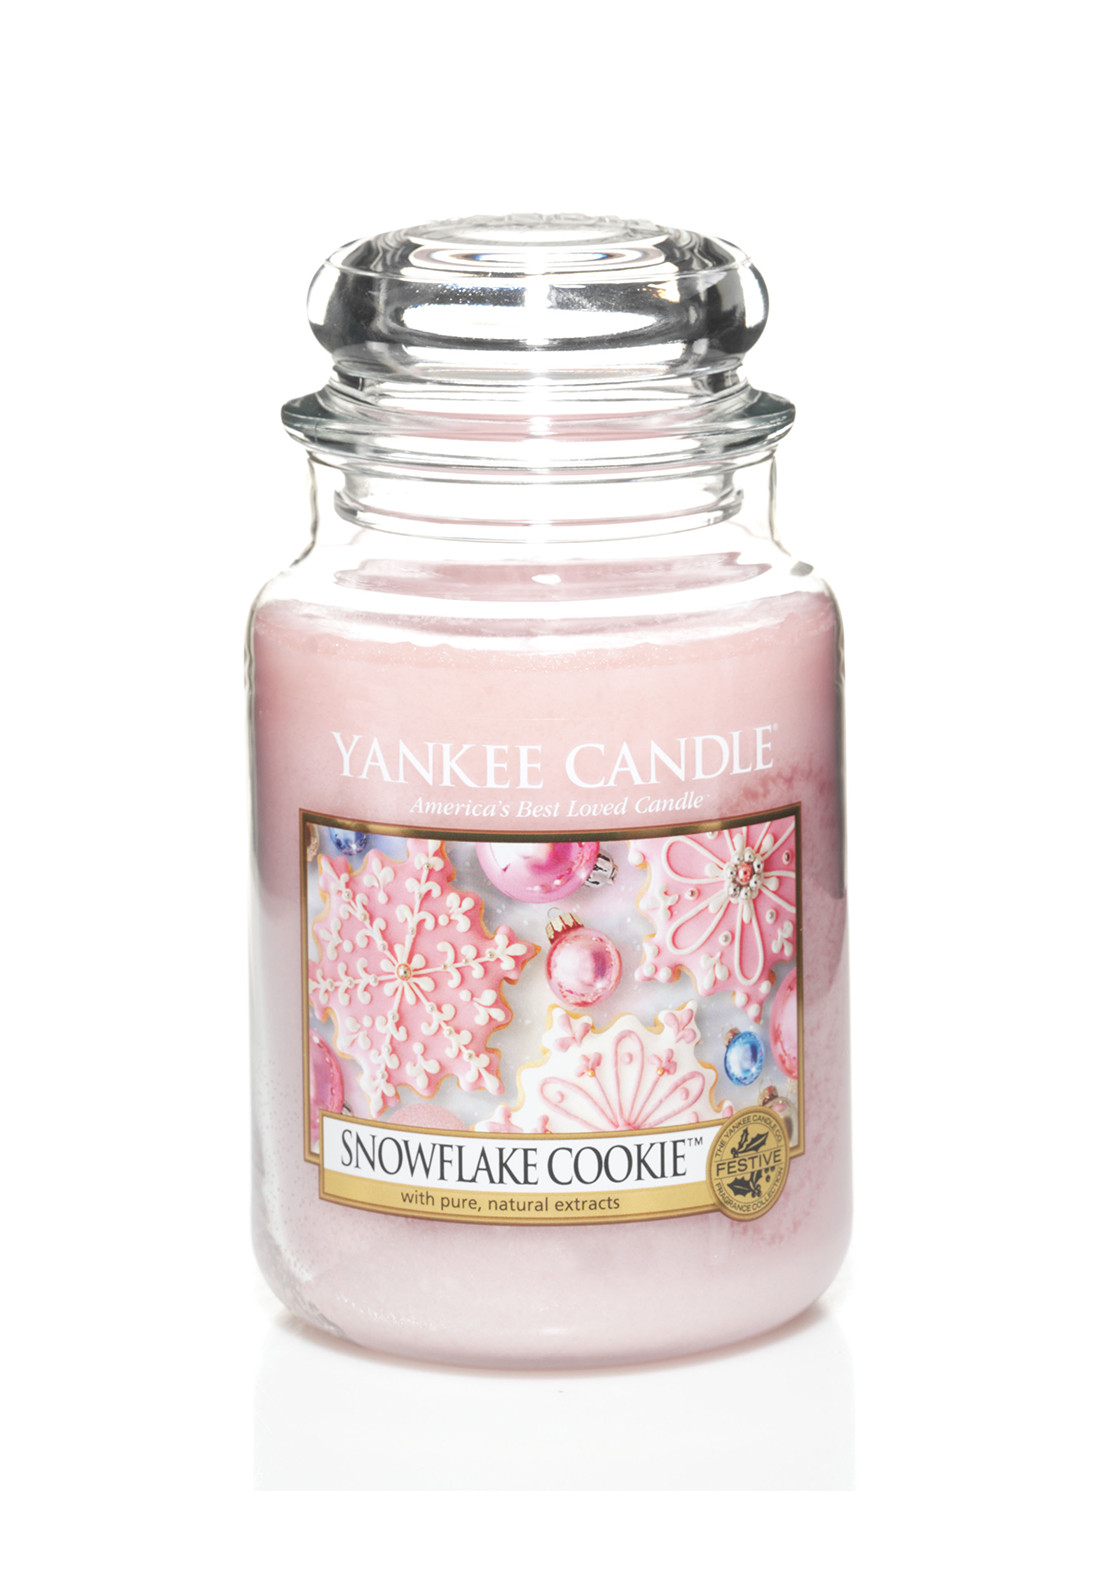 Yankee Candle Christmas, Snowflake Cookie Large Jar